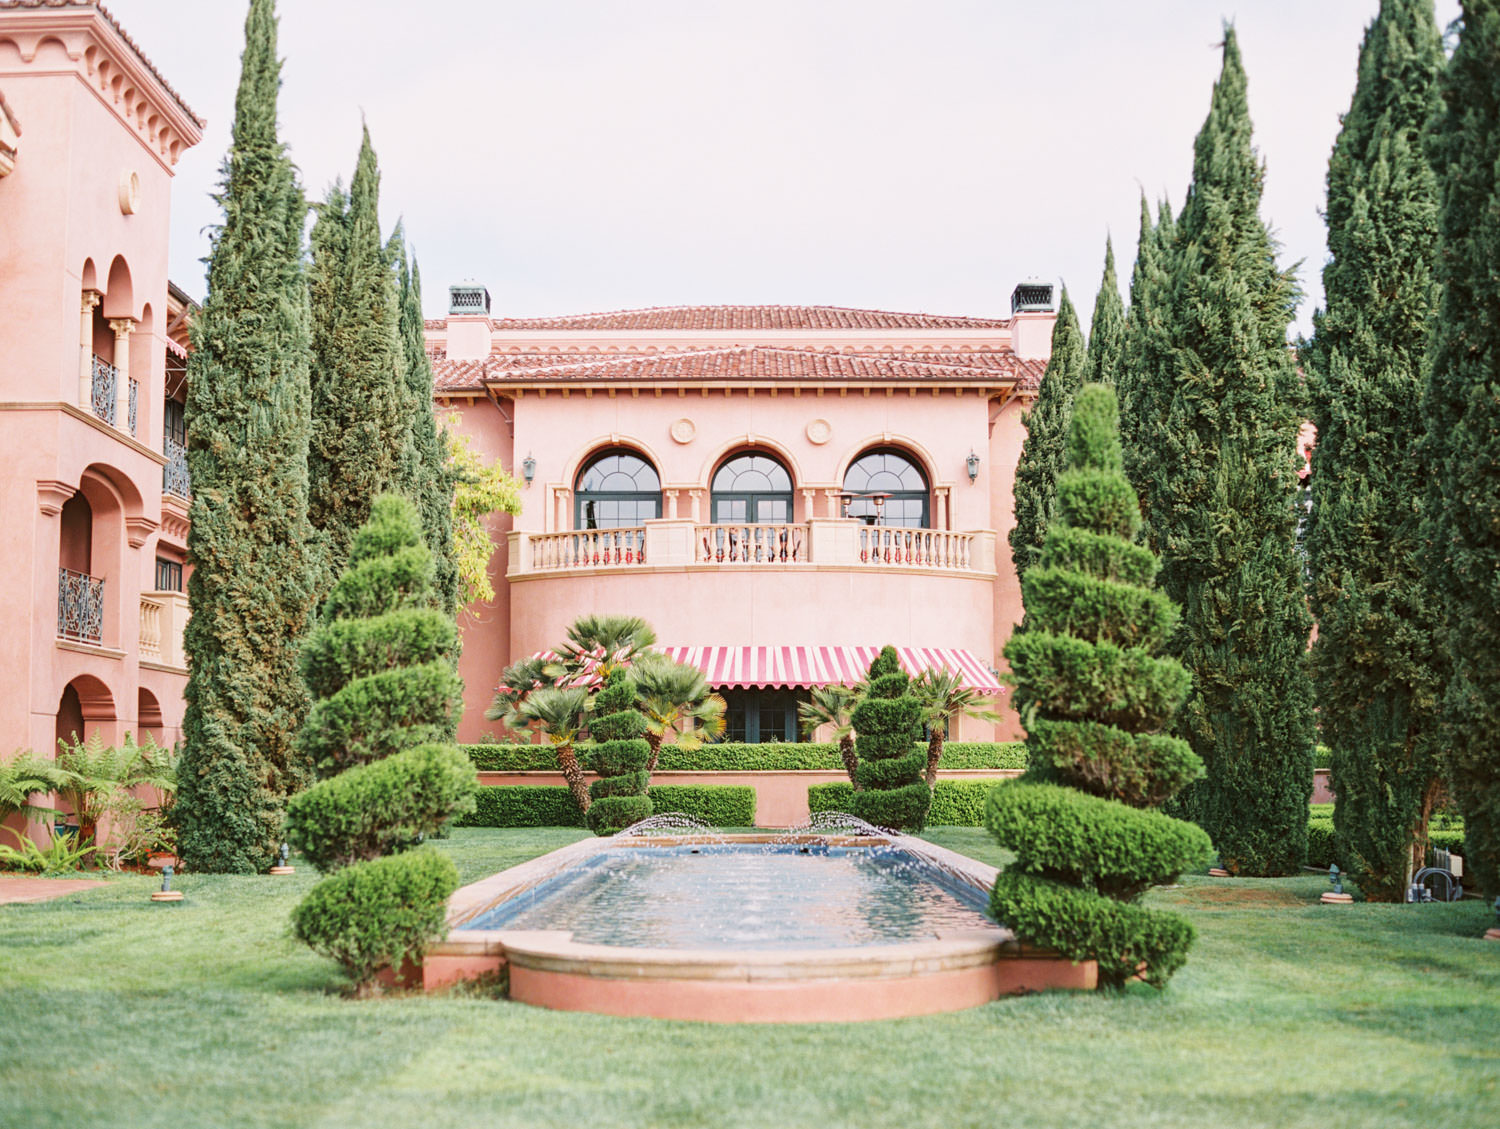 Fairmont Grand del Mar Aria lawn wedding published on Martha Stewart Weddings